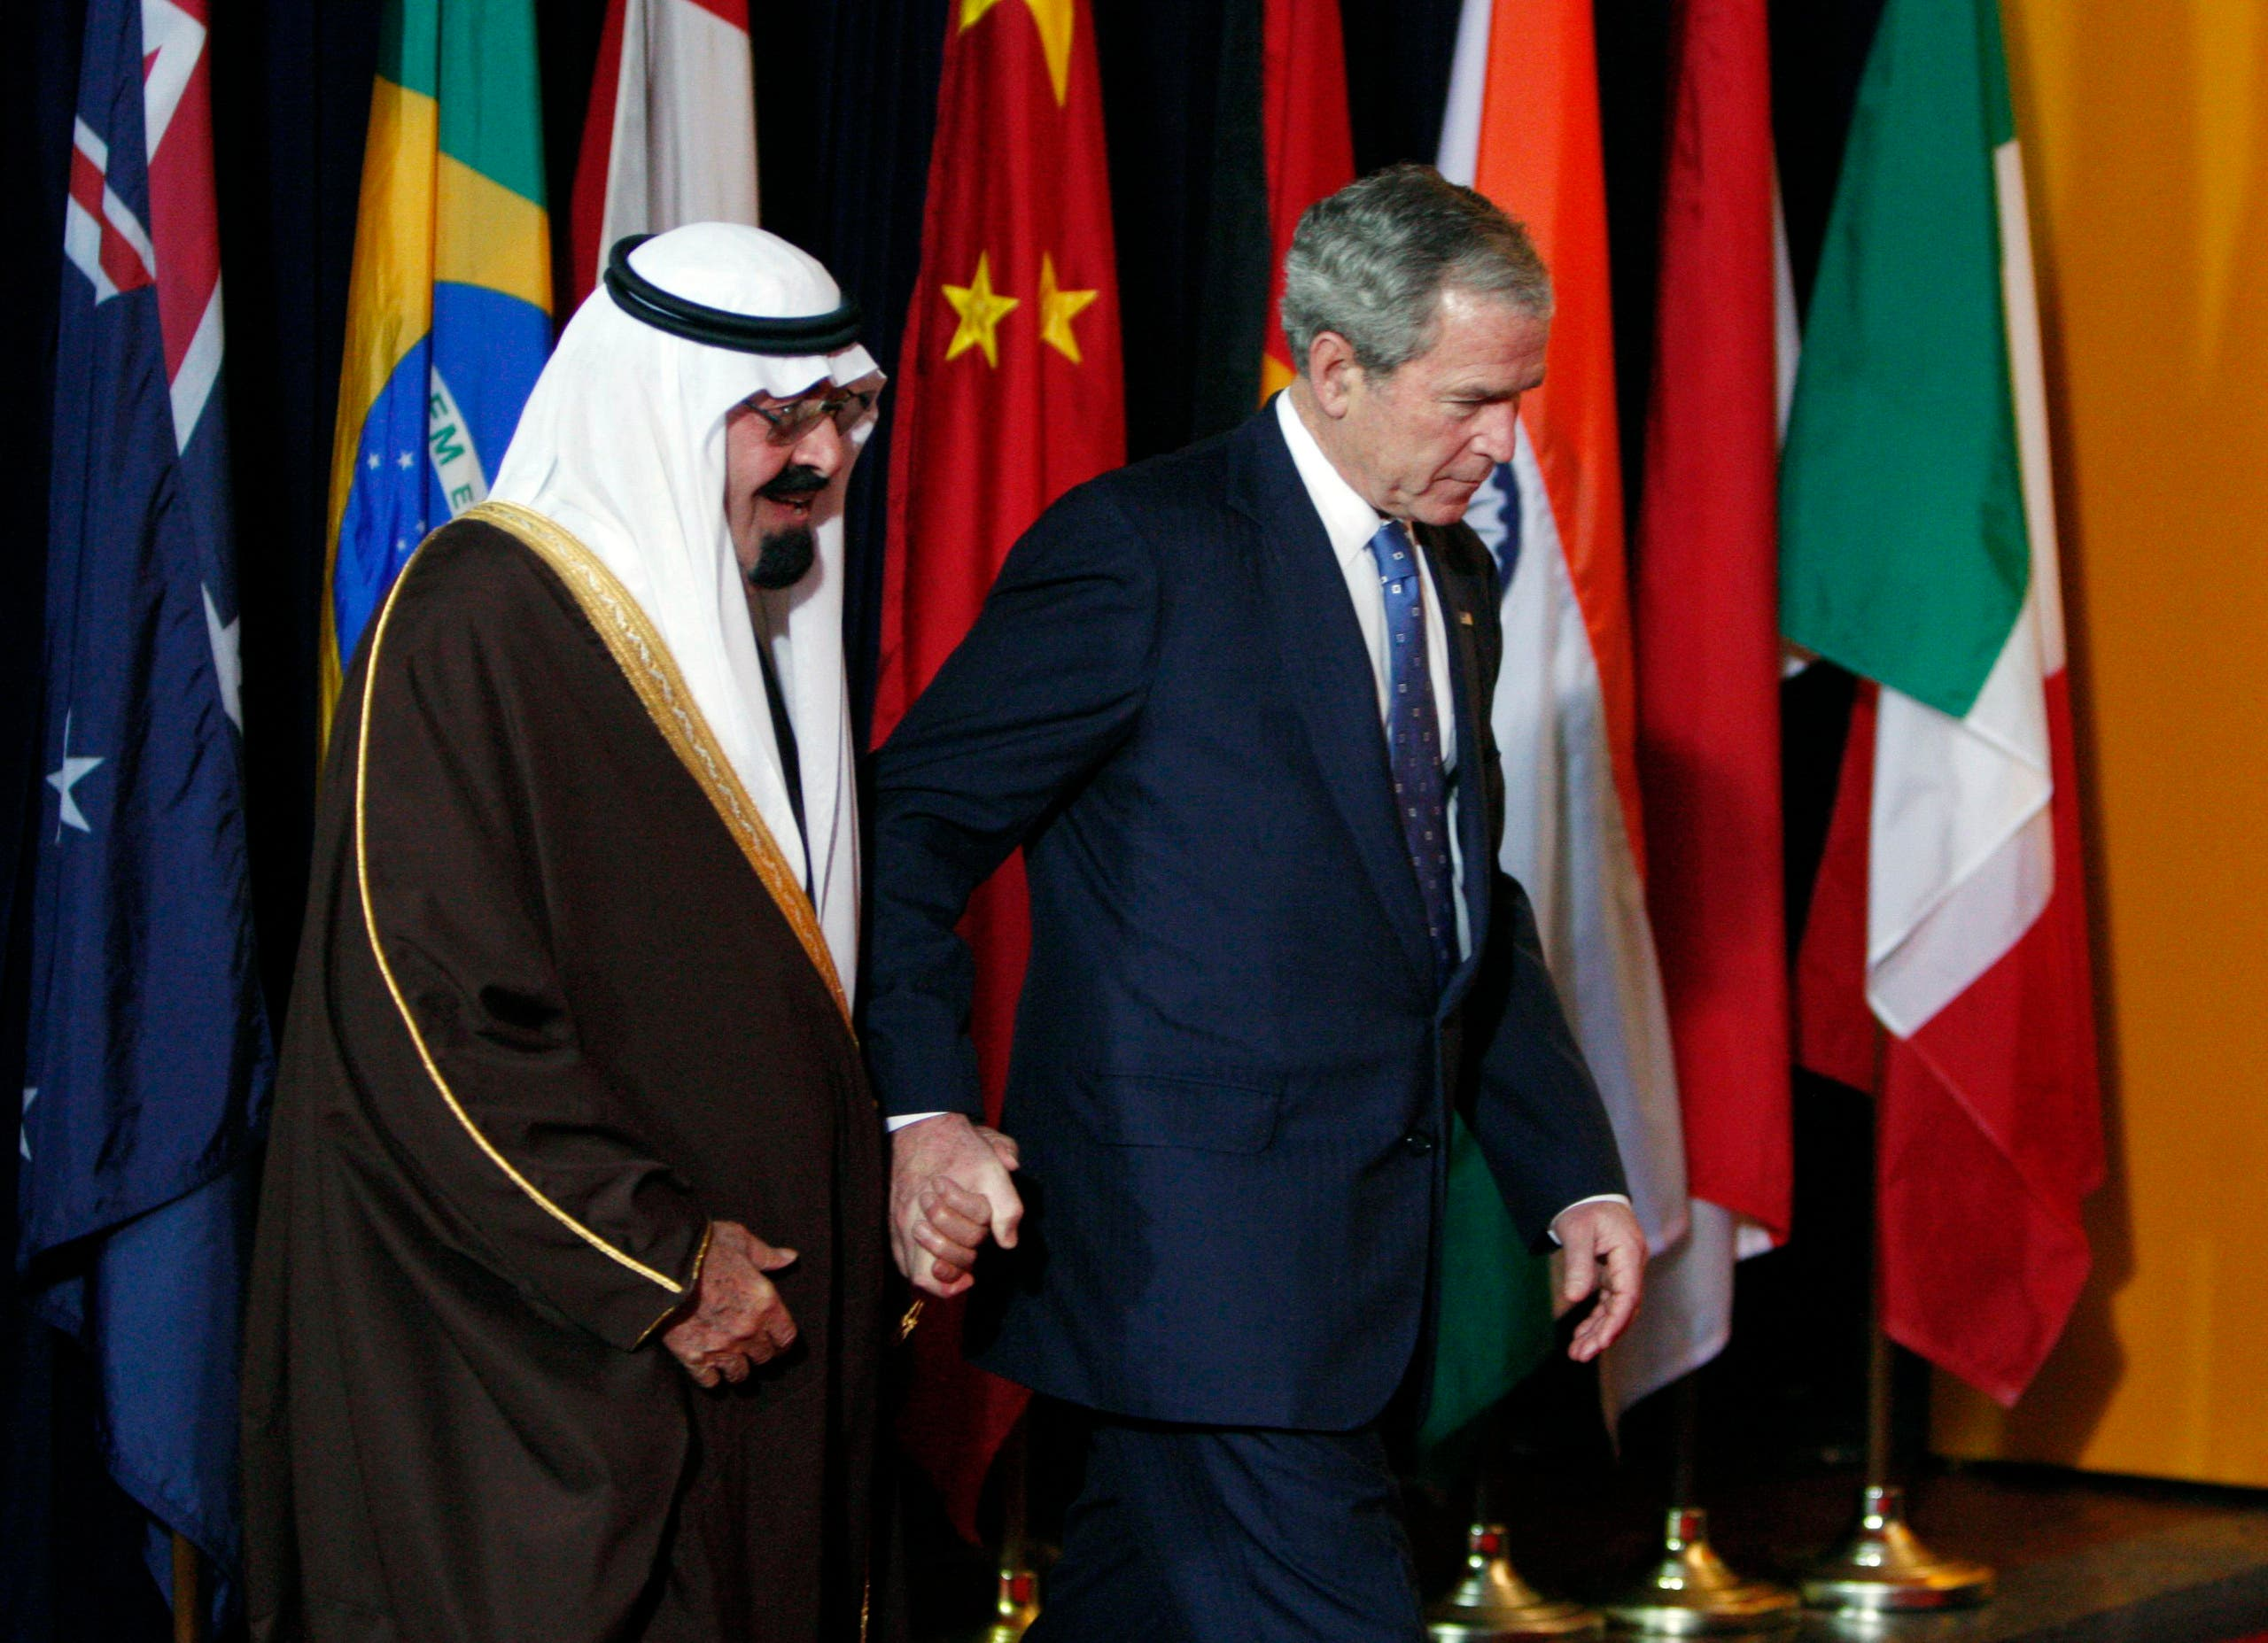 U.S. President George W. Bush (R) escorts Saudi Arabia's King Abdullah into the group photo at the G20 Summit on Financial Markets and the World Economy at the National Building Museum in Washington, November 15, 2008.